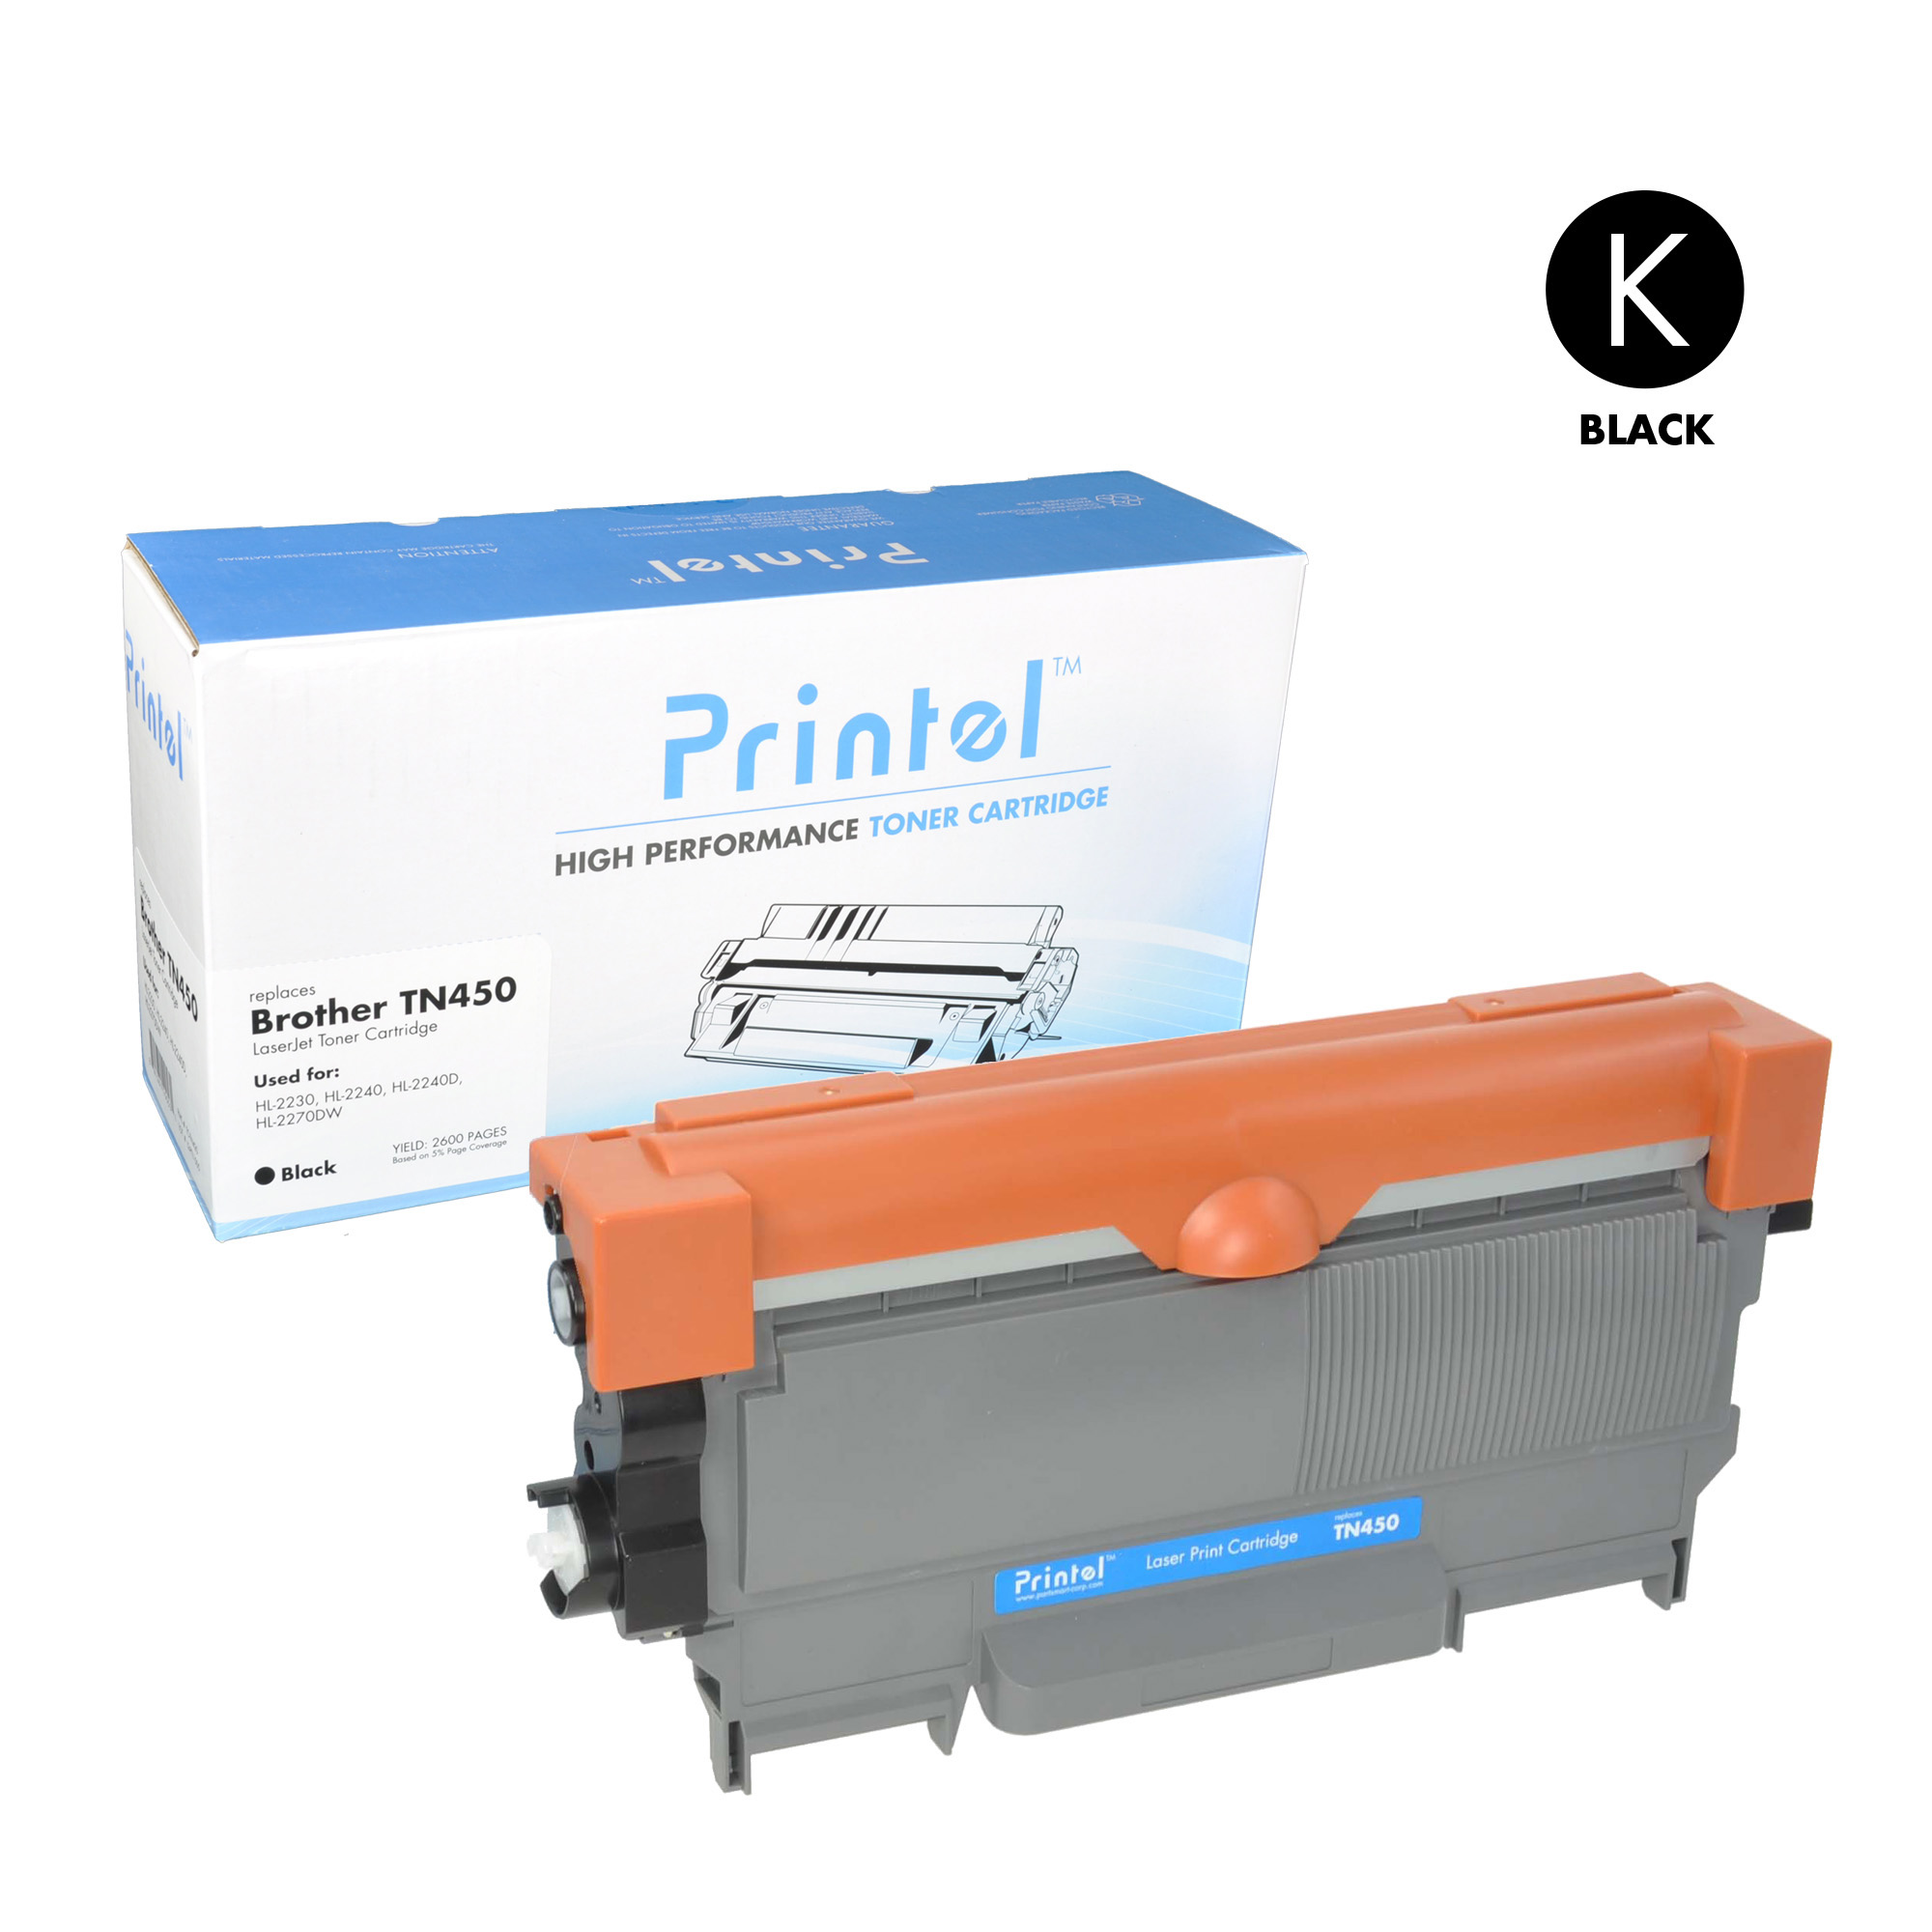 Brother TN420 Toner Cartridge used with Brother DCP-7060, Brother DCP-7065, Brother HL-2220, Brother HL-2240